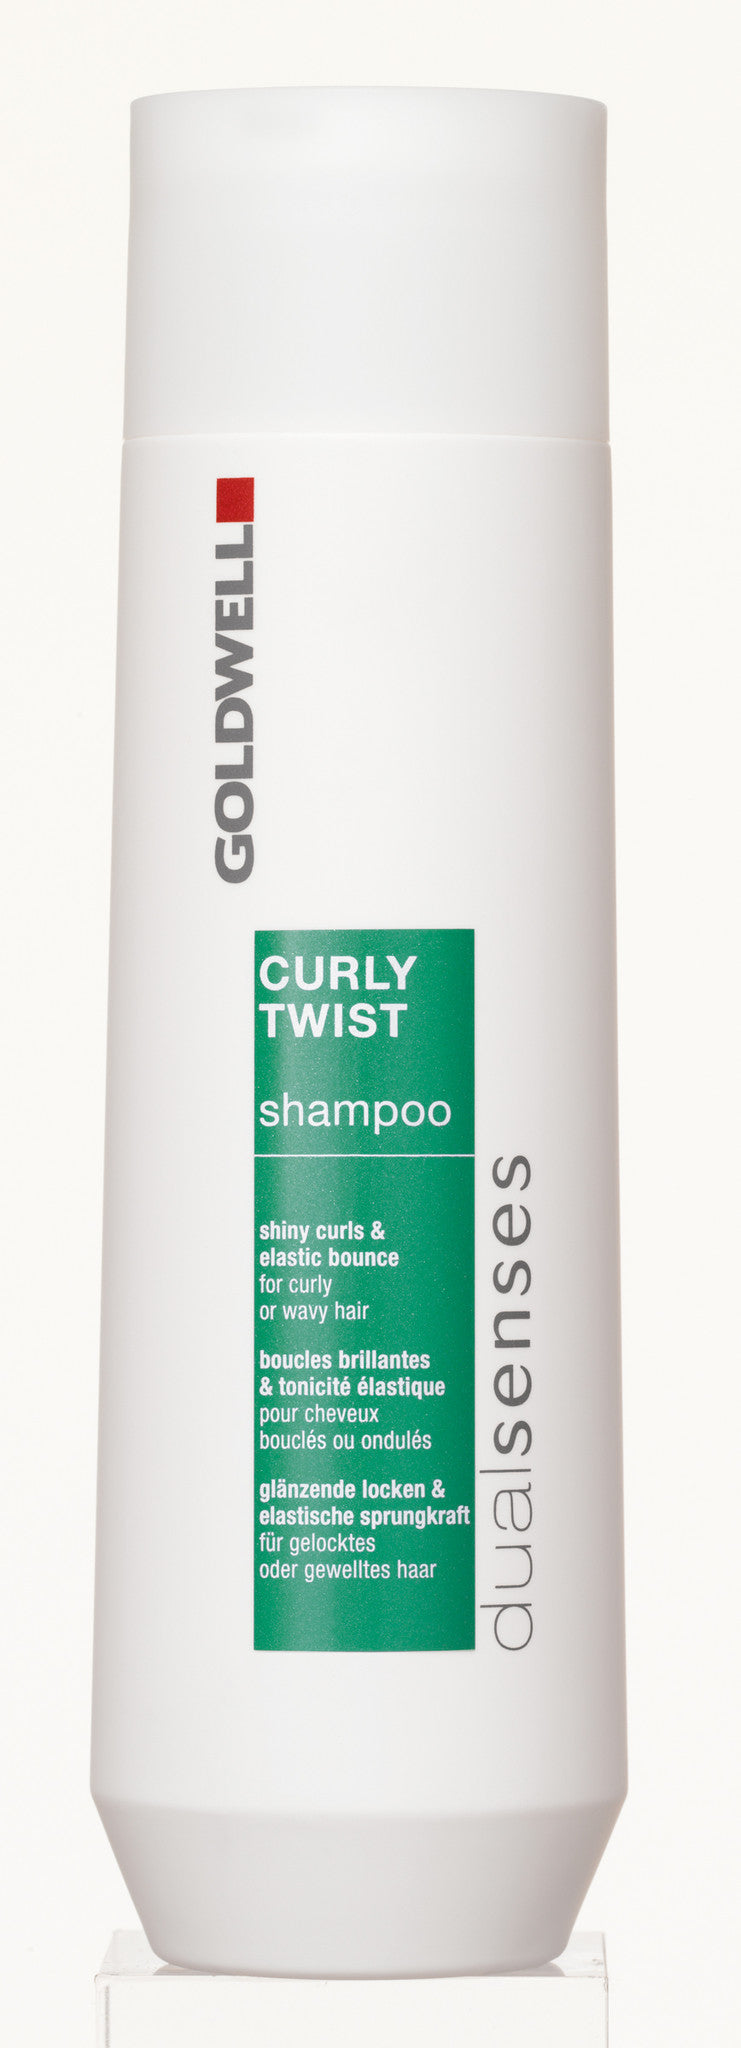 Dual Senses Curly Twist Shampoo 300 mls. - urbaca